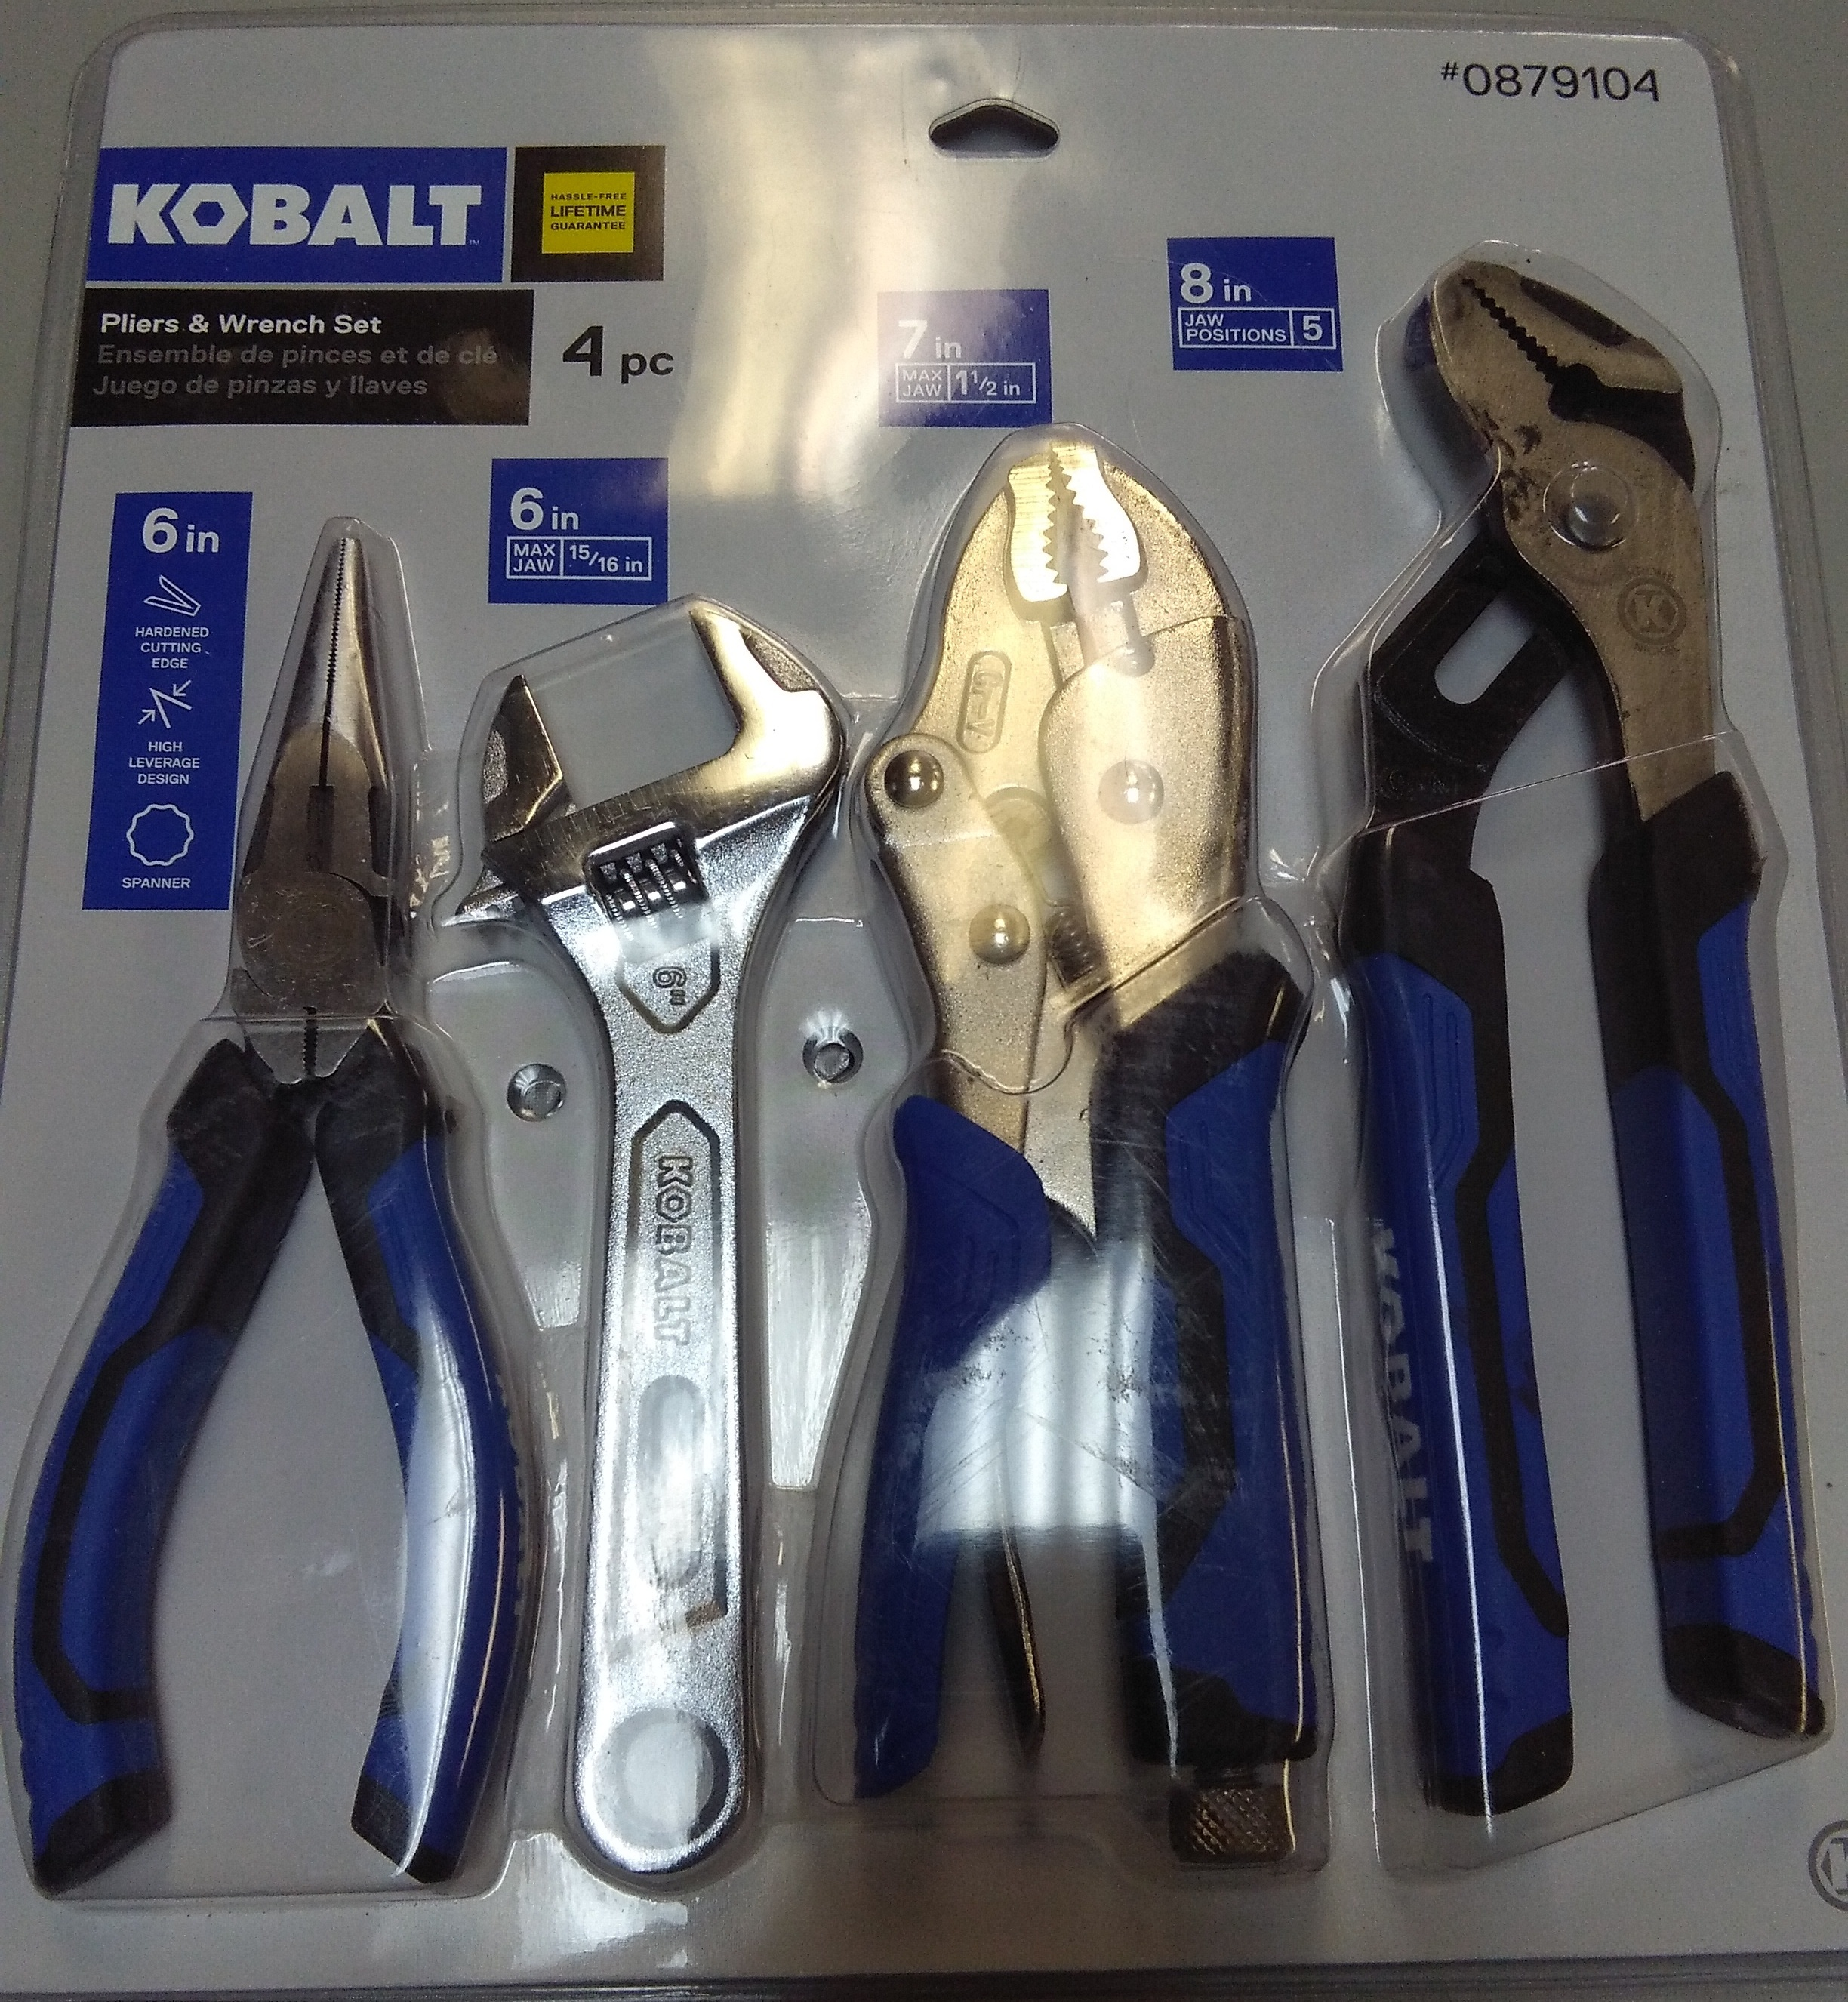 Kobalt 4 Piece Pliers and Wrench Set